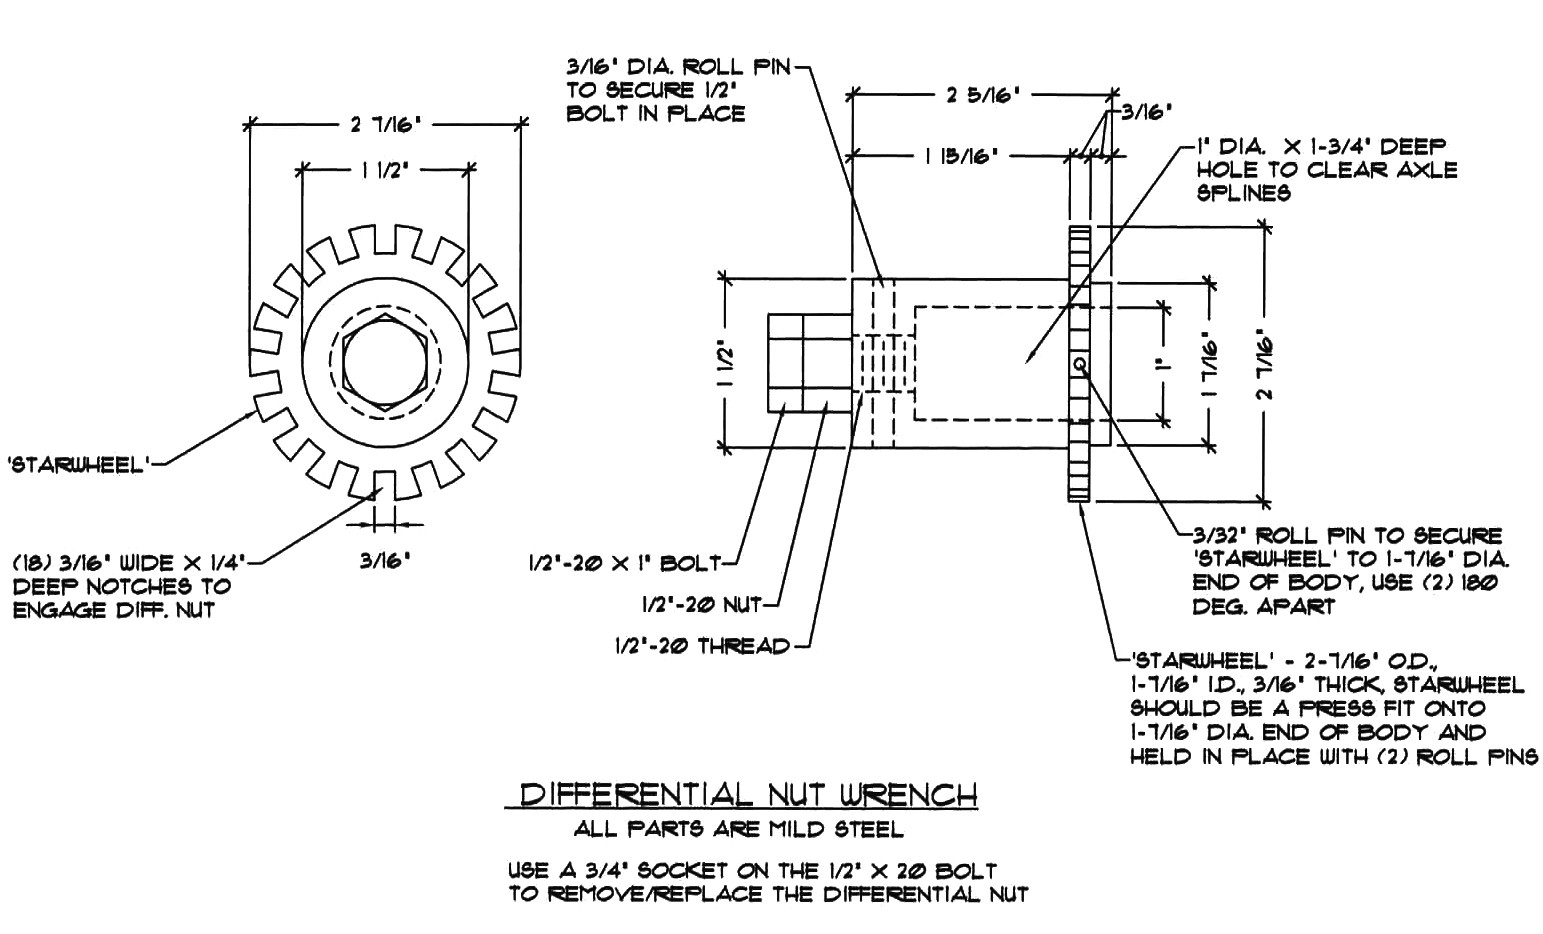 Lotus Europa Master Documentation Menu Differential Gear Schematic Nut Wrench Drawing